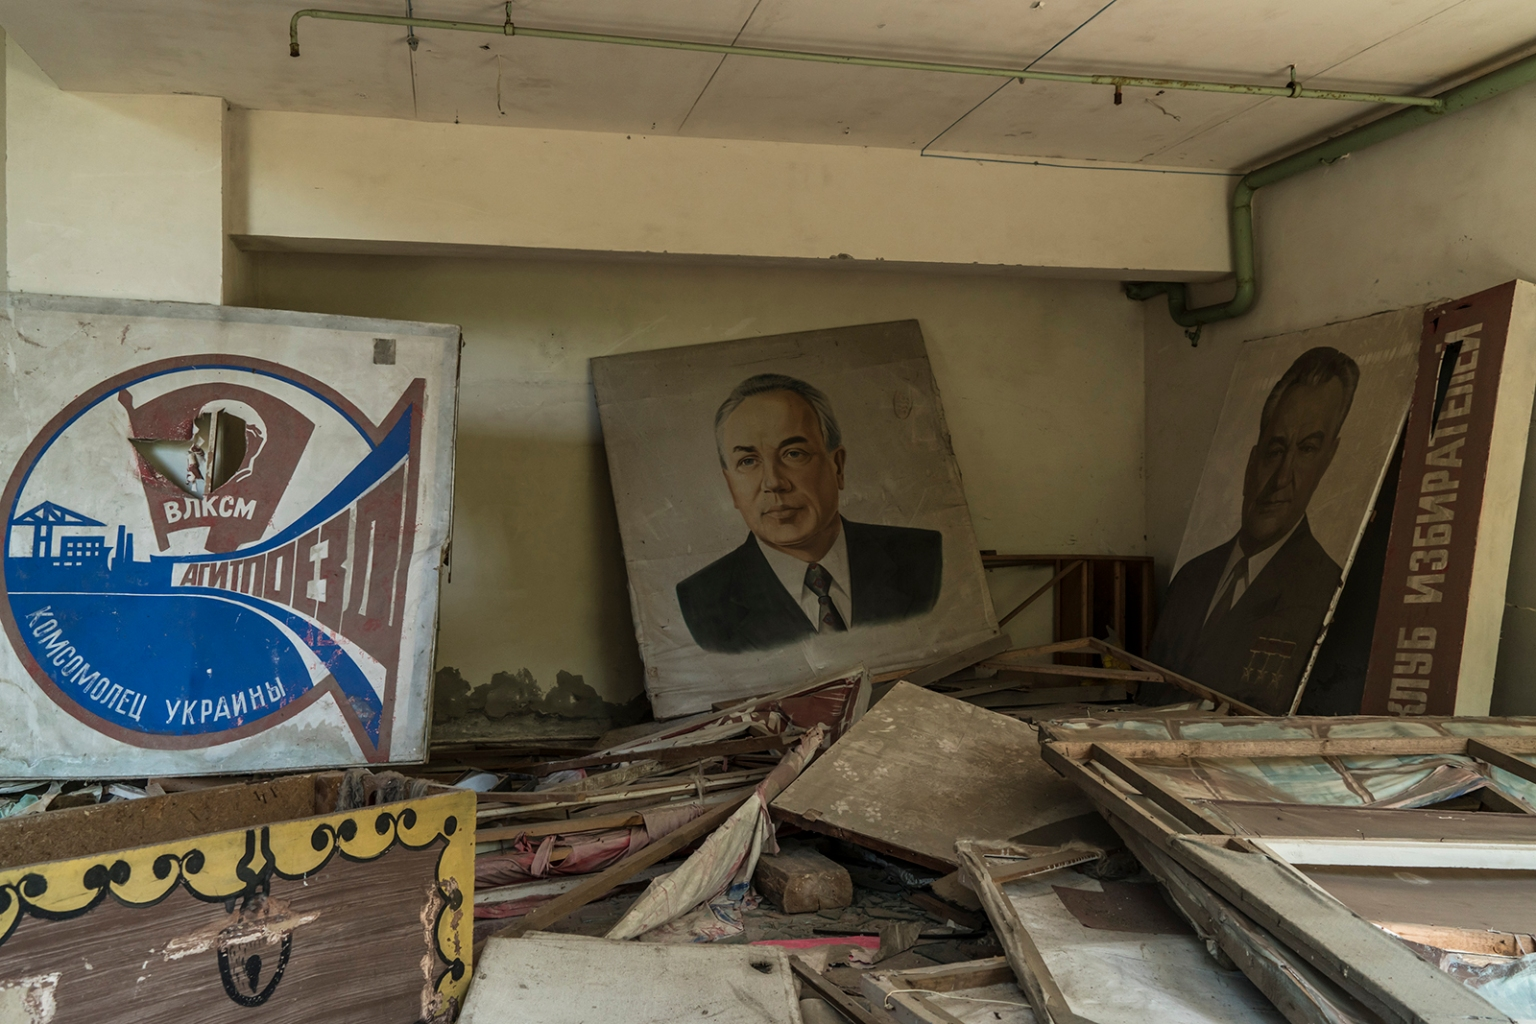 Posters and portraits rest in an abandoned building in Pripyat, Ukraine, inside the Chernobyl Exclusion Zone, on July 2. Brendan Hoffman/Getty Images